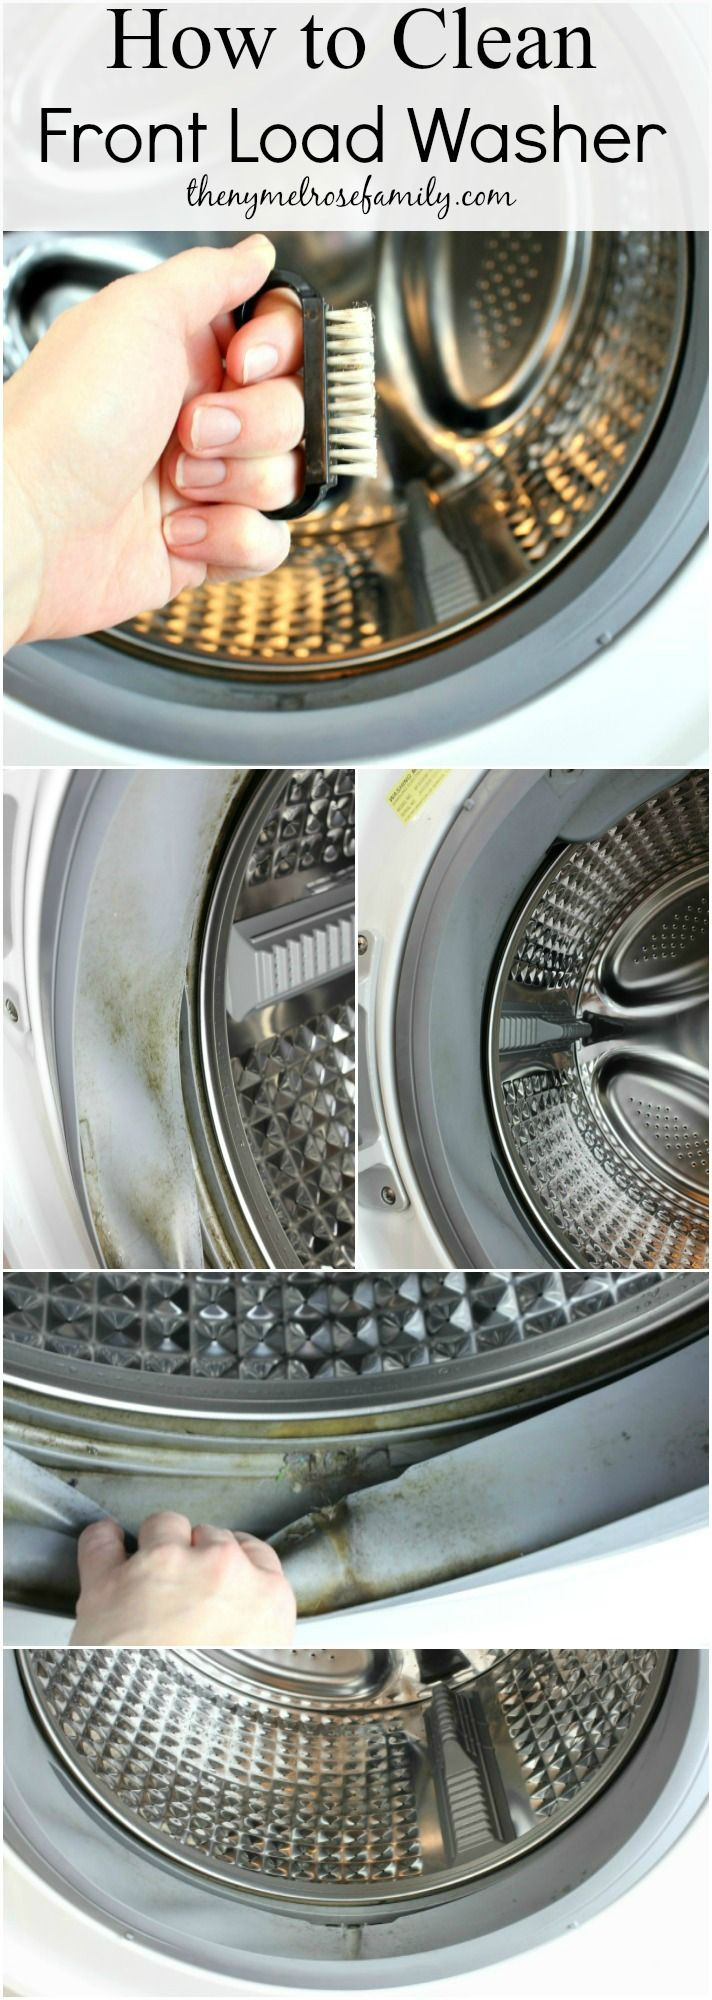 How to Clean your Front Load Washer so that it sparkles and SMELLS clean!